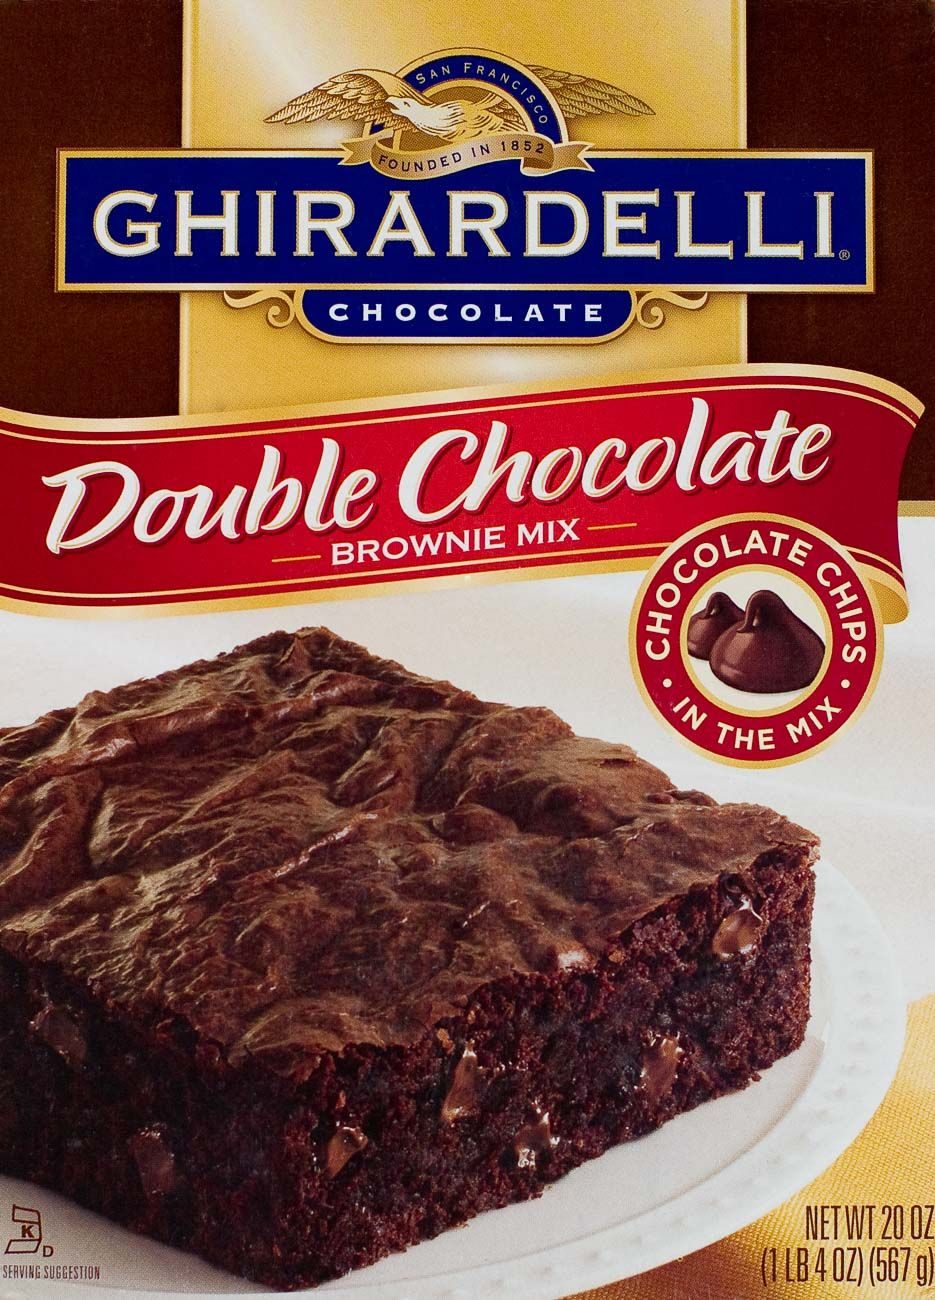 Ghirardelli-double-chocolate-brownies-food-stylist-San-Francisco.jpg